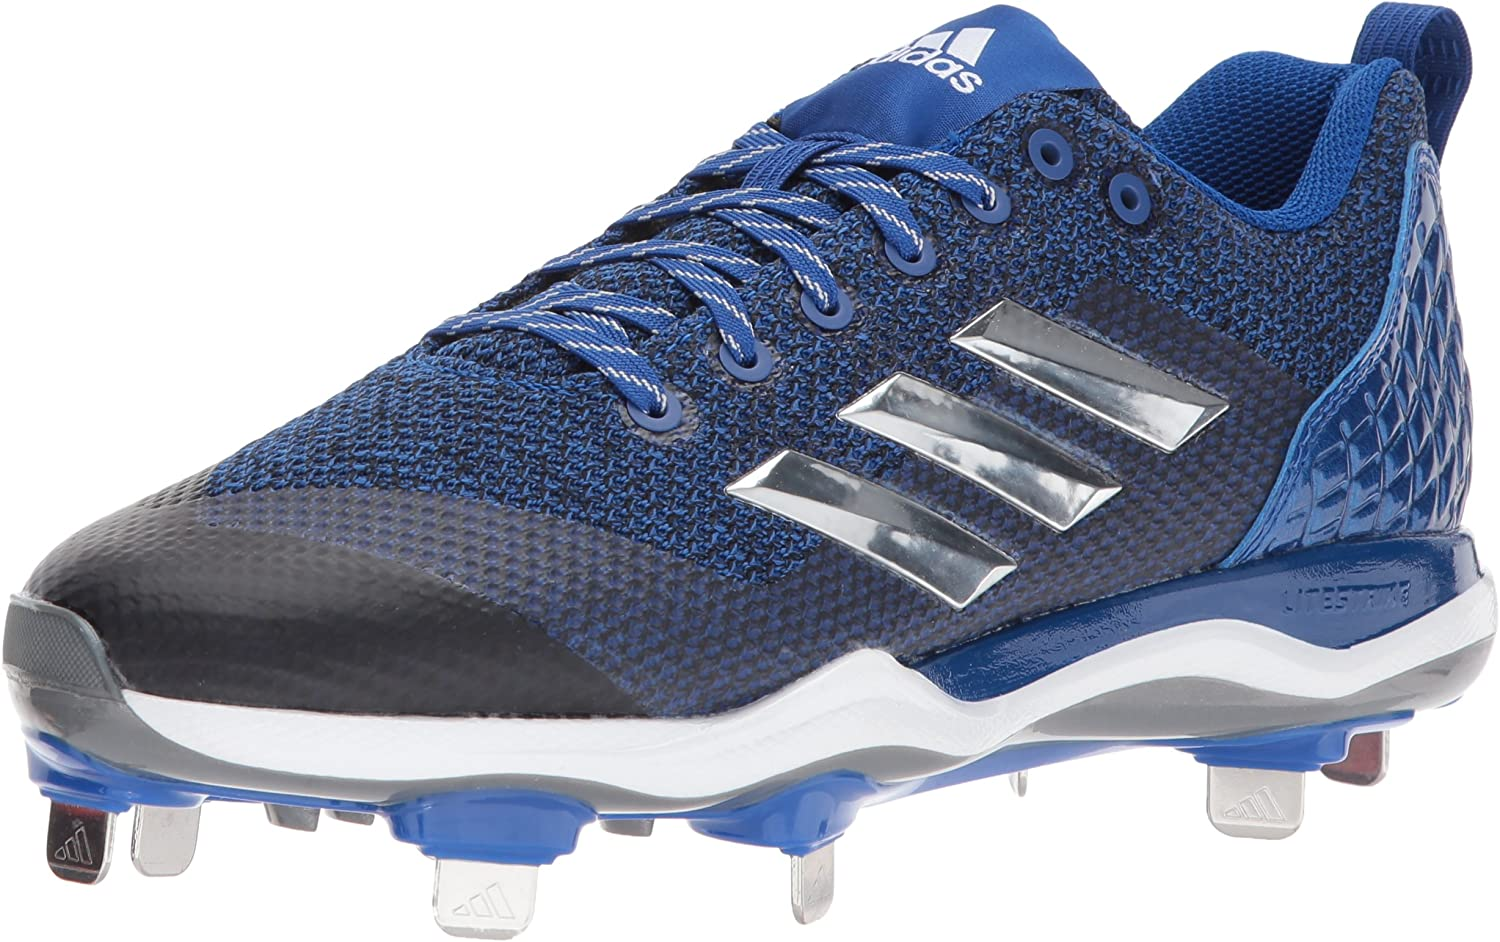 Adidas PowerAlley 5 Cleat Women's Softball